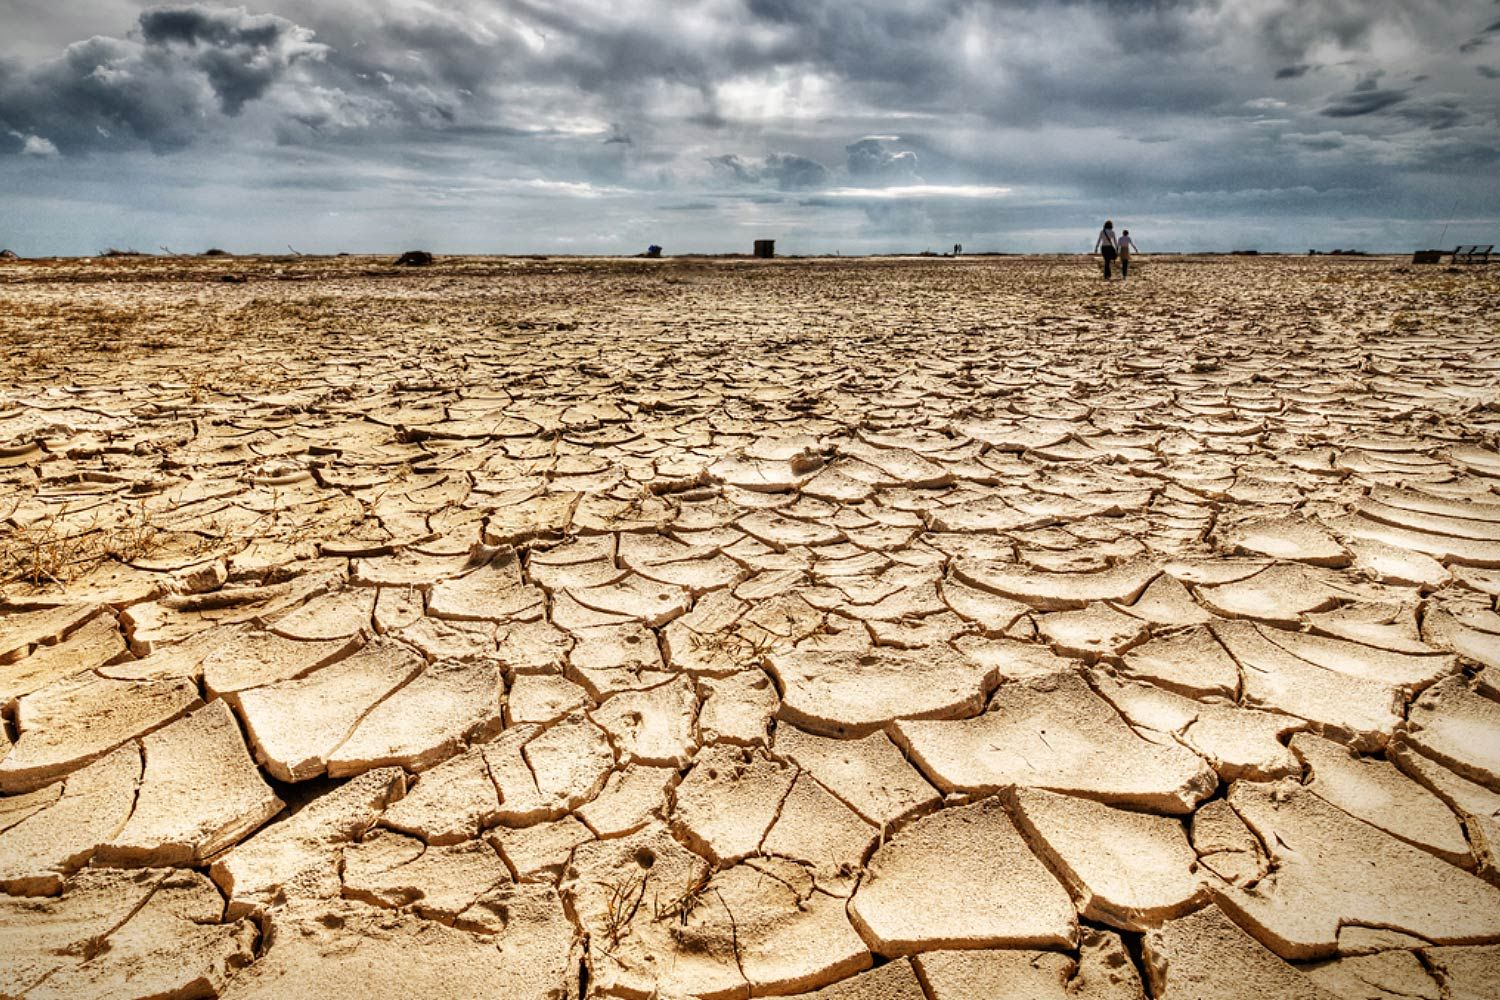 Drought, one of the consequences of climate change